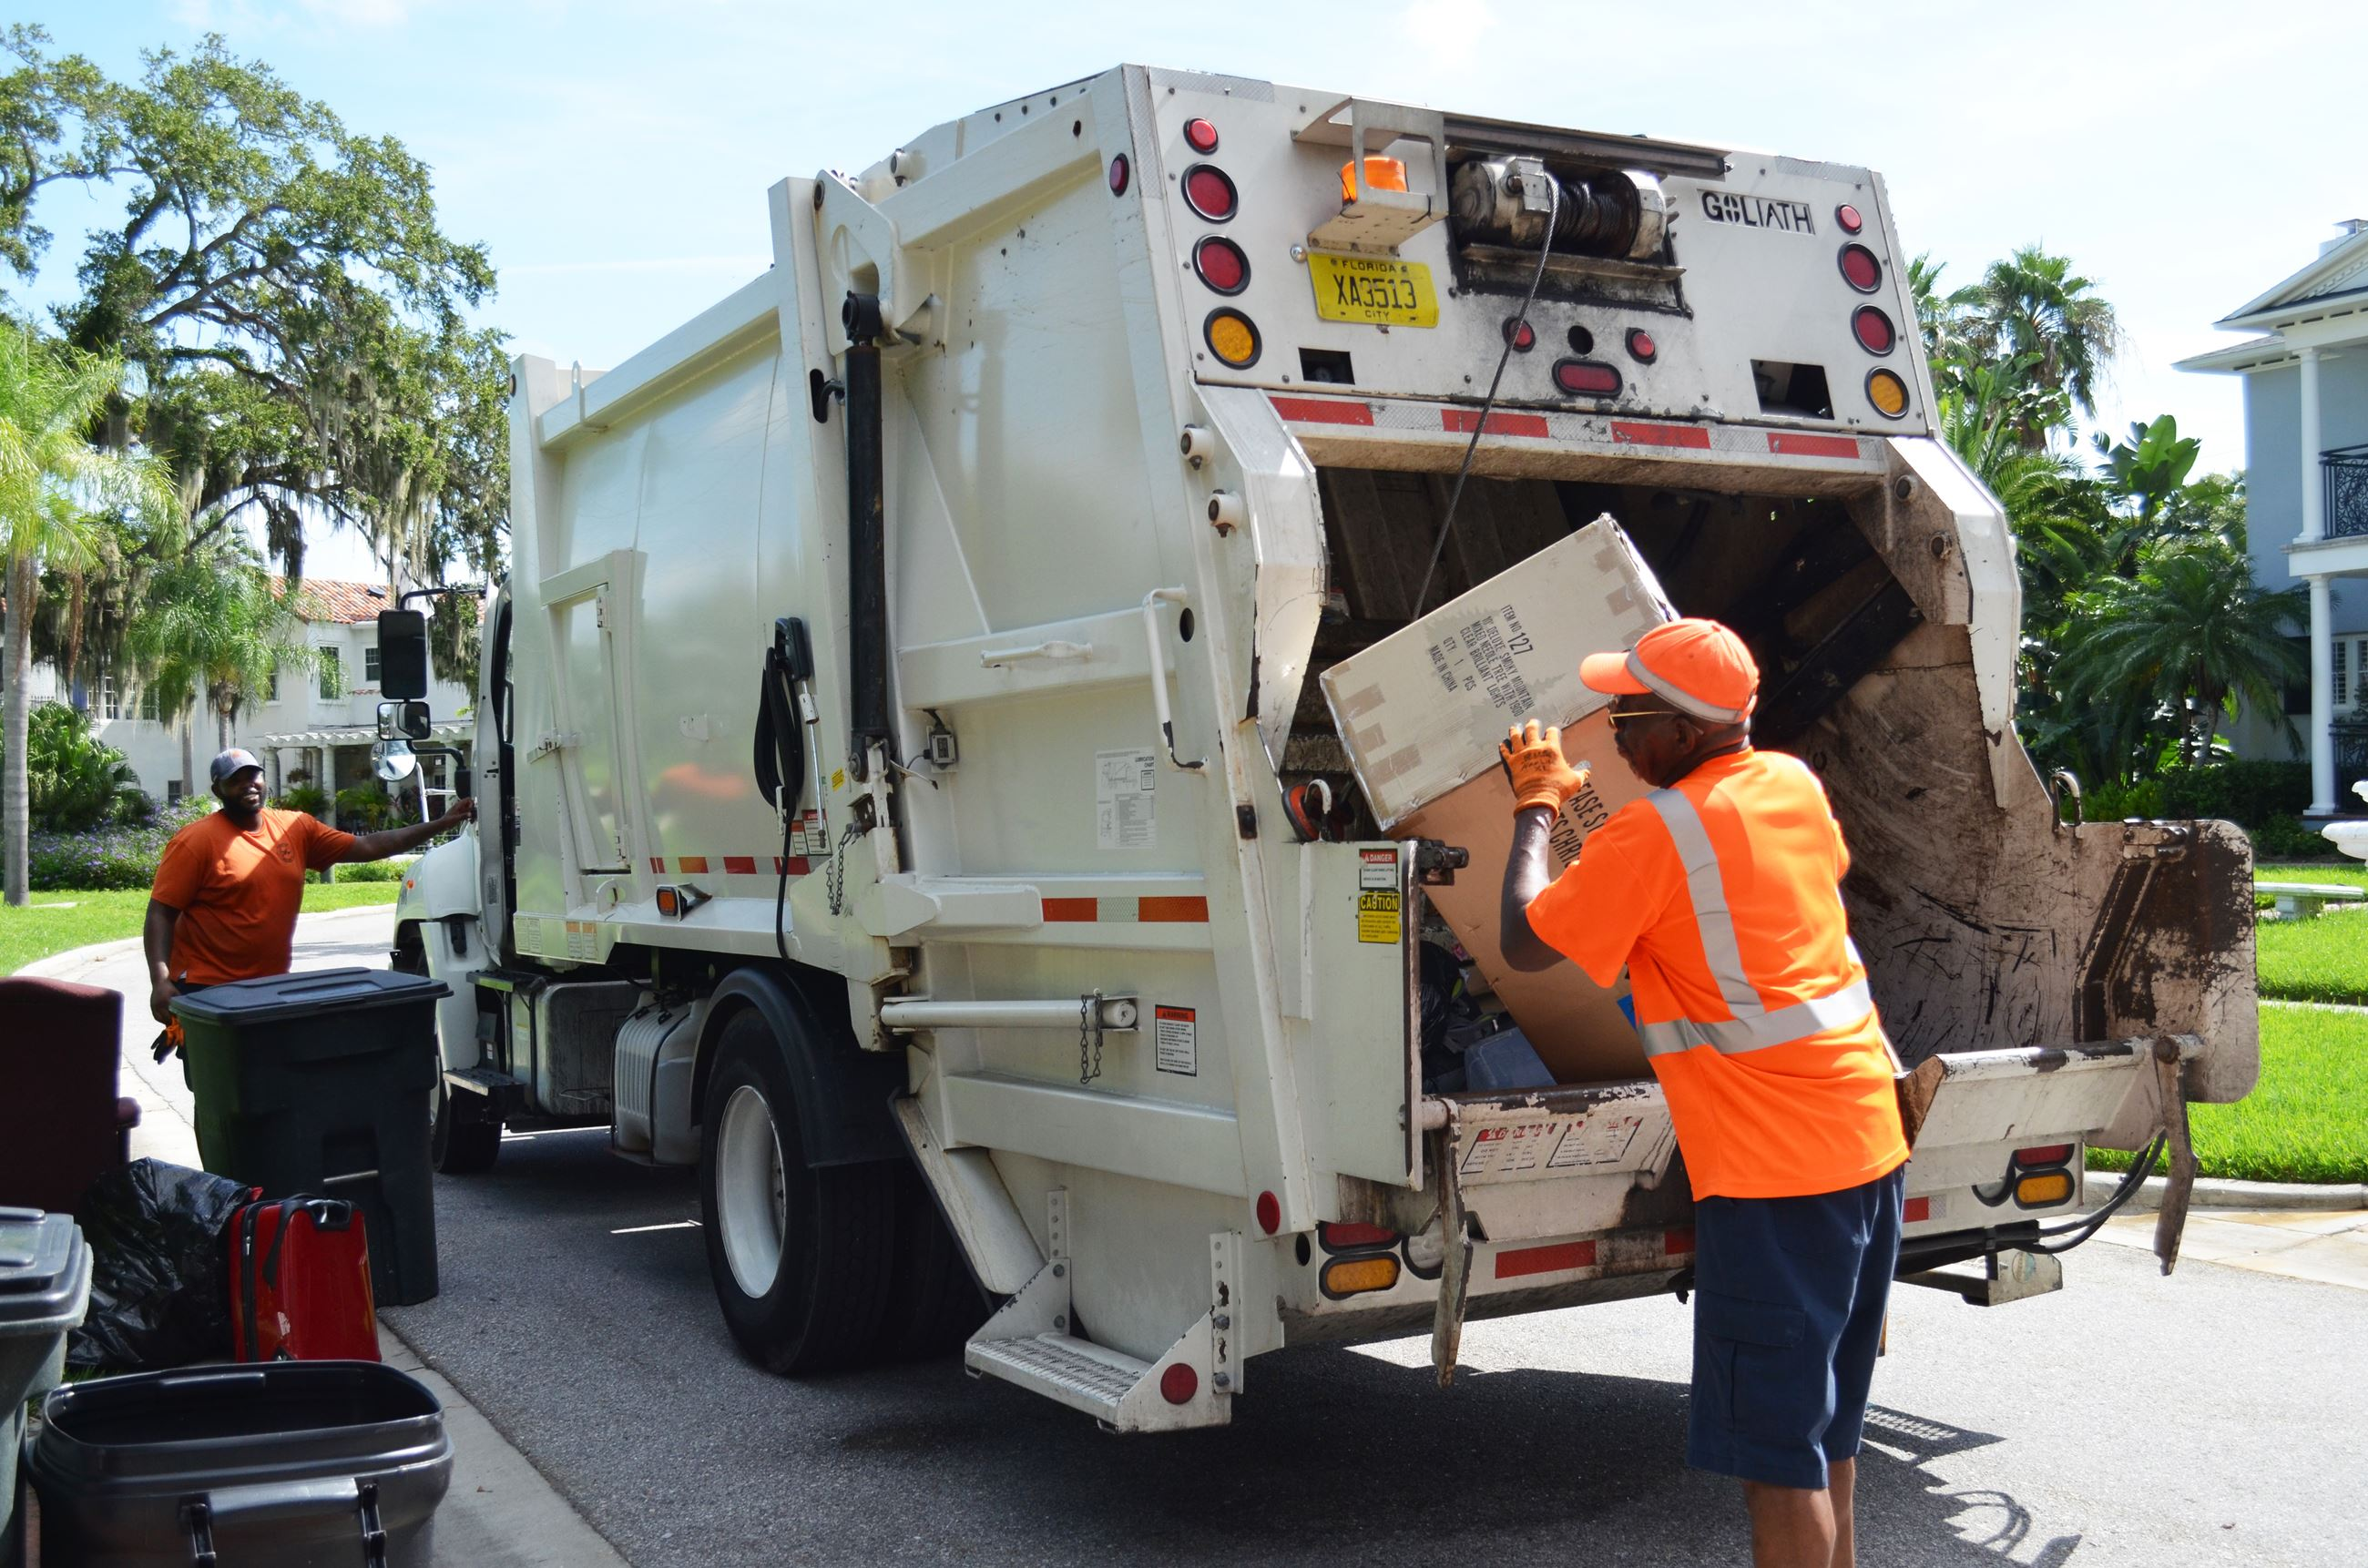 A solid waste employee dumps a trash bin into the back of a garbage truck.